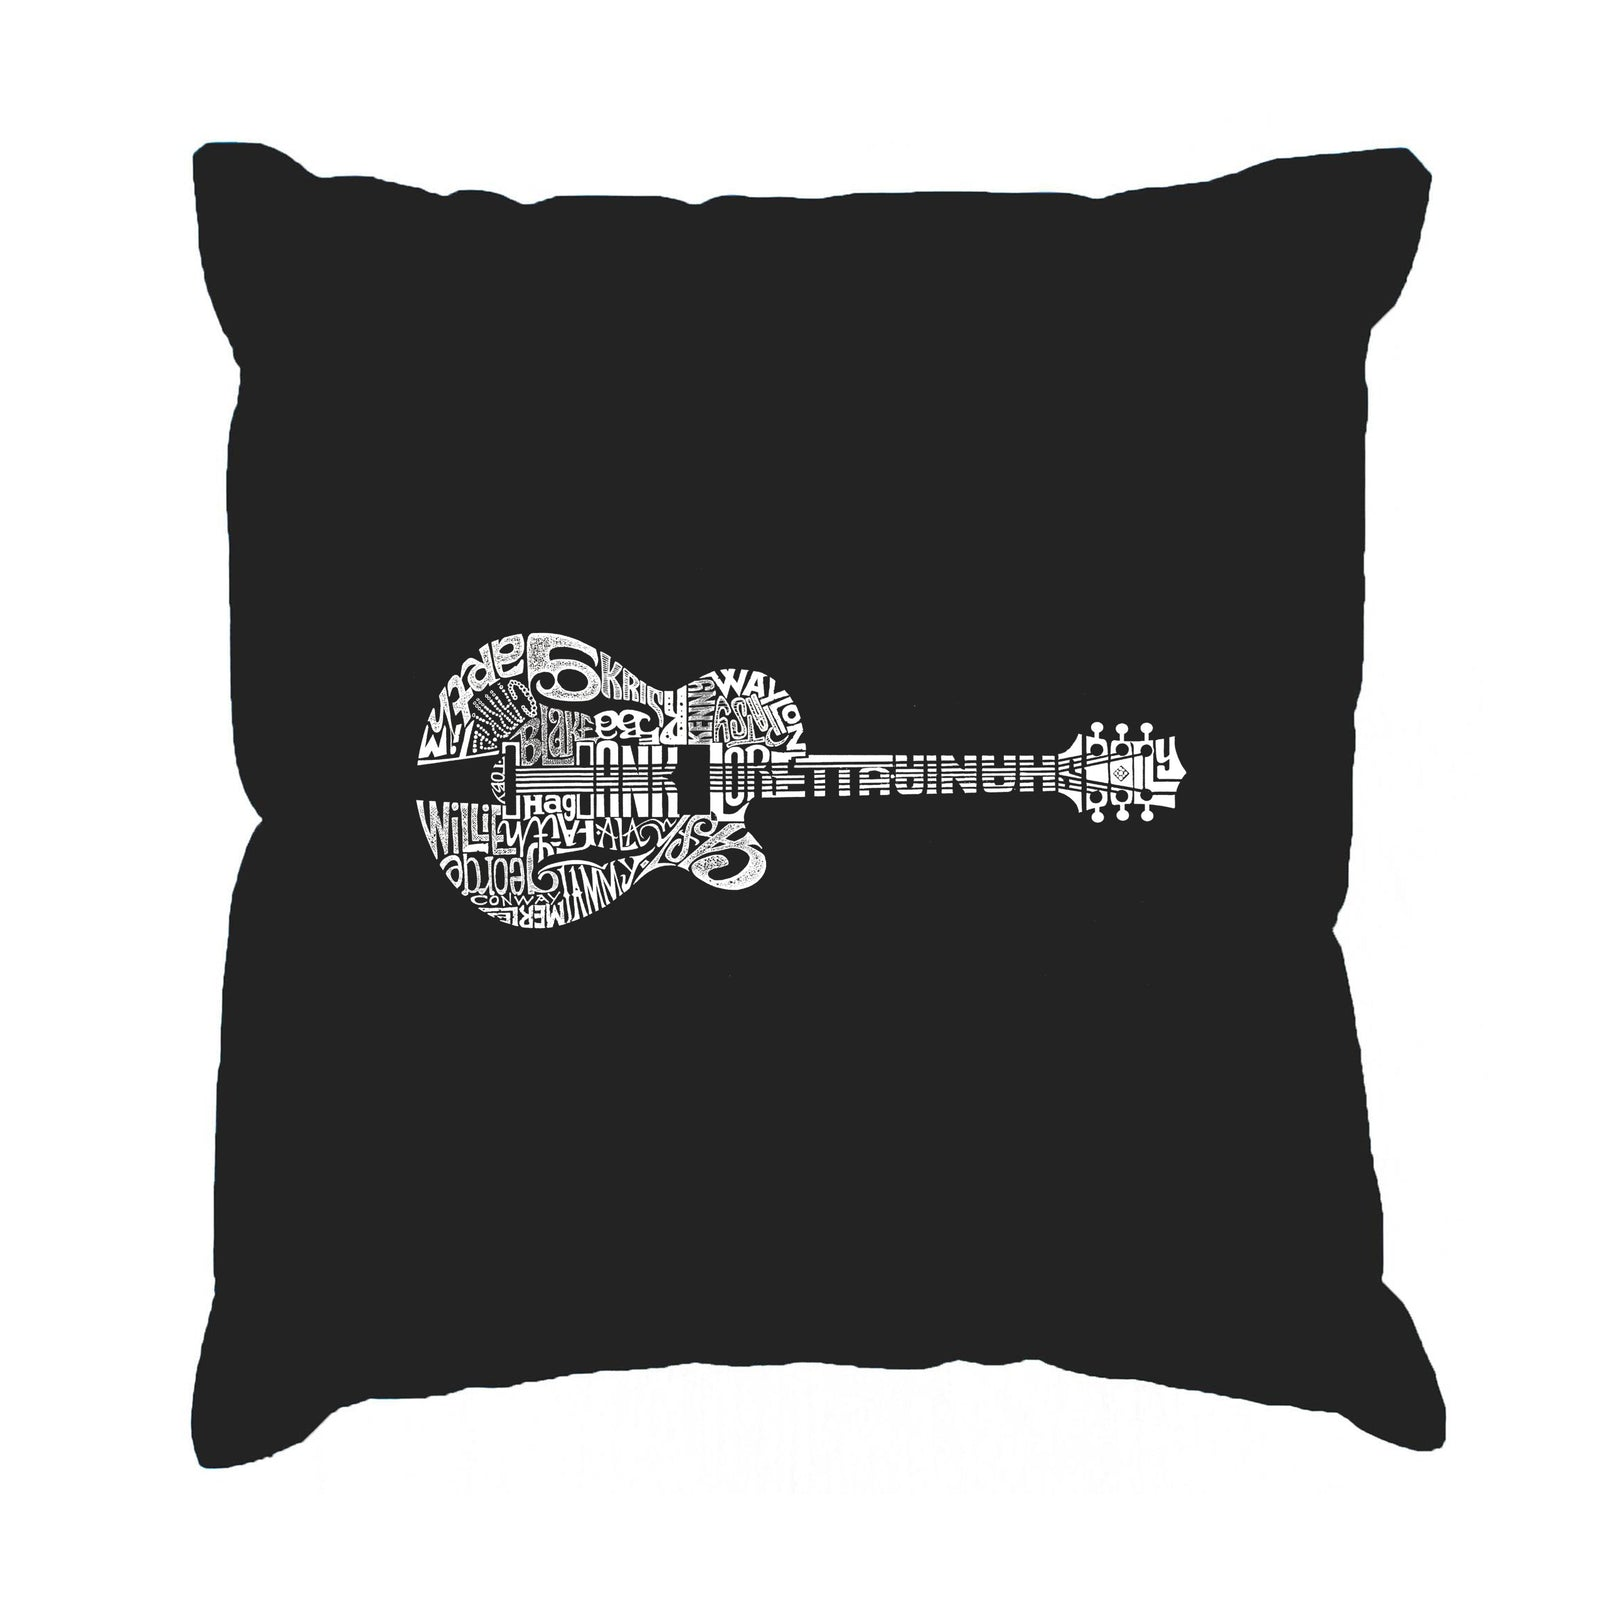 Throw Pillow Cover - Country Guitar